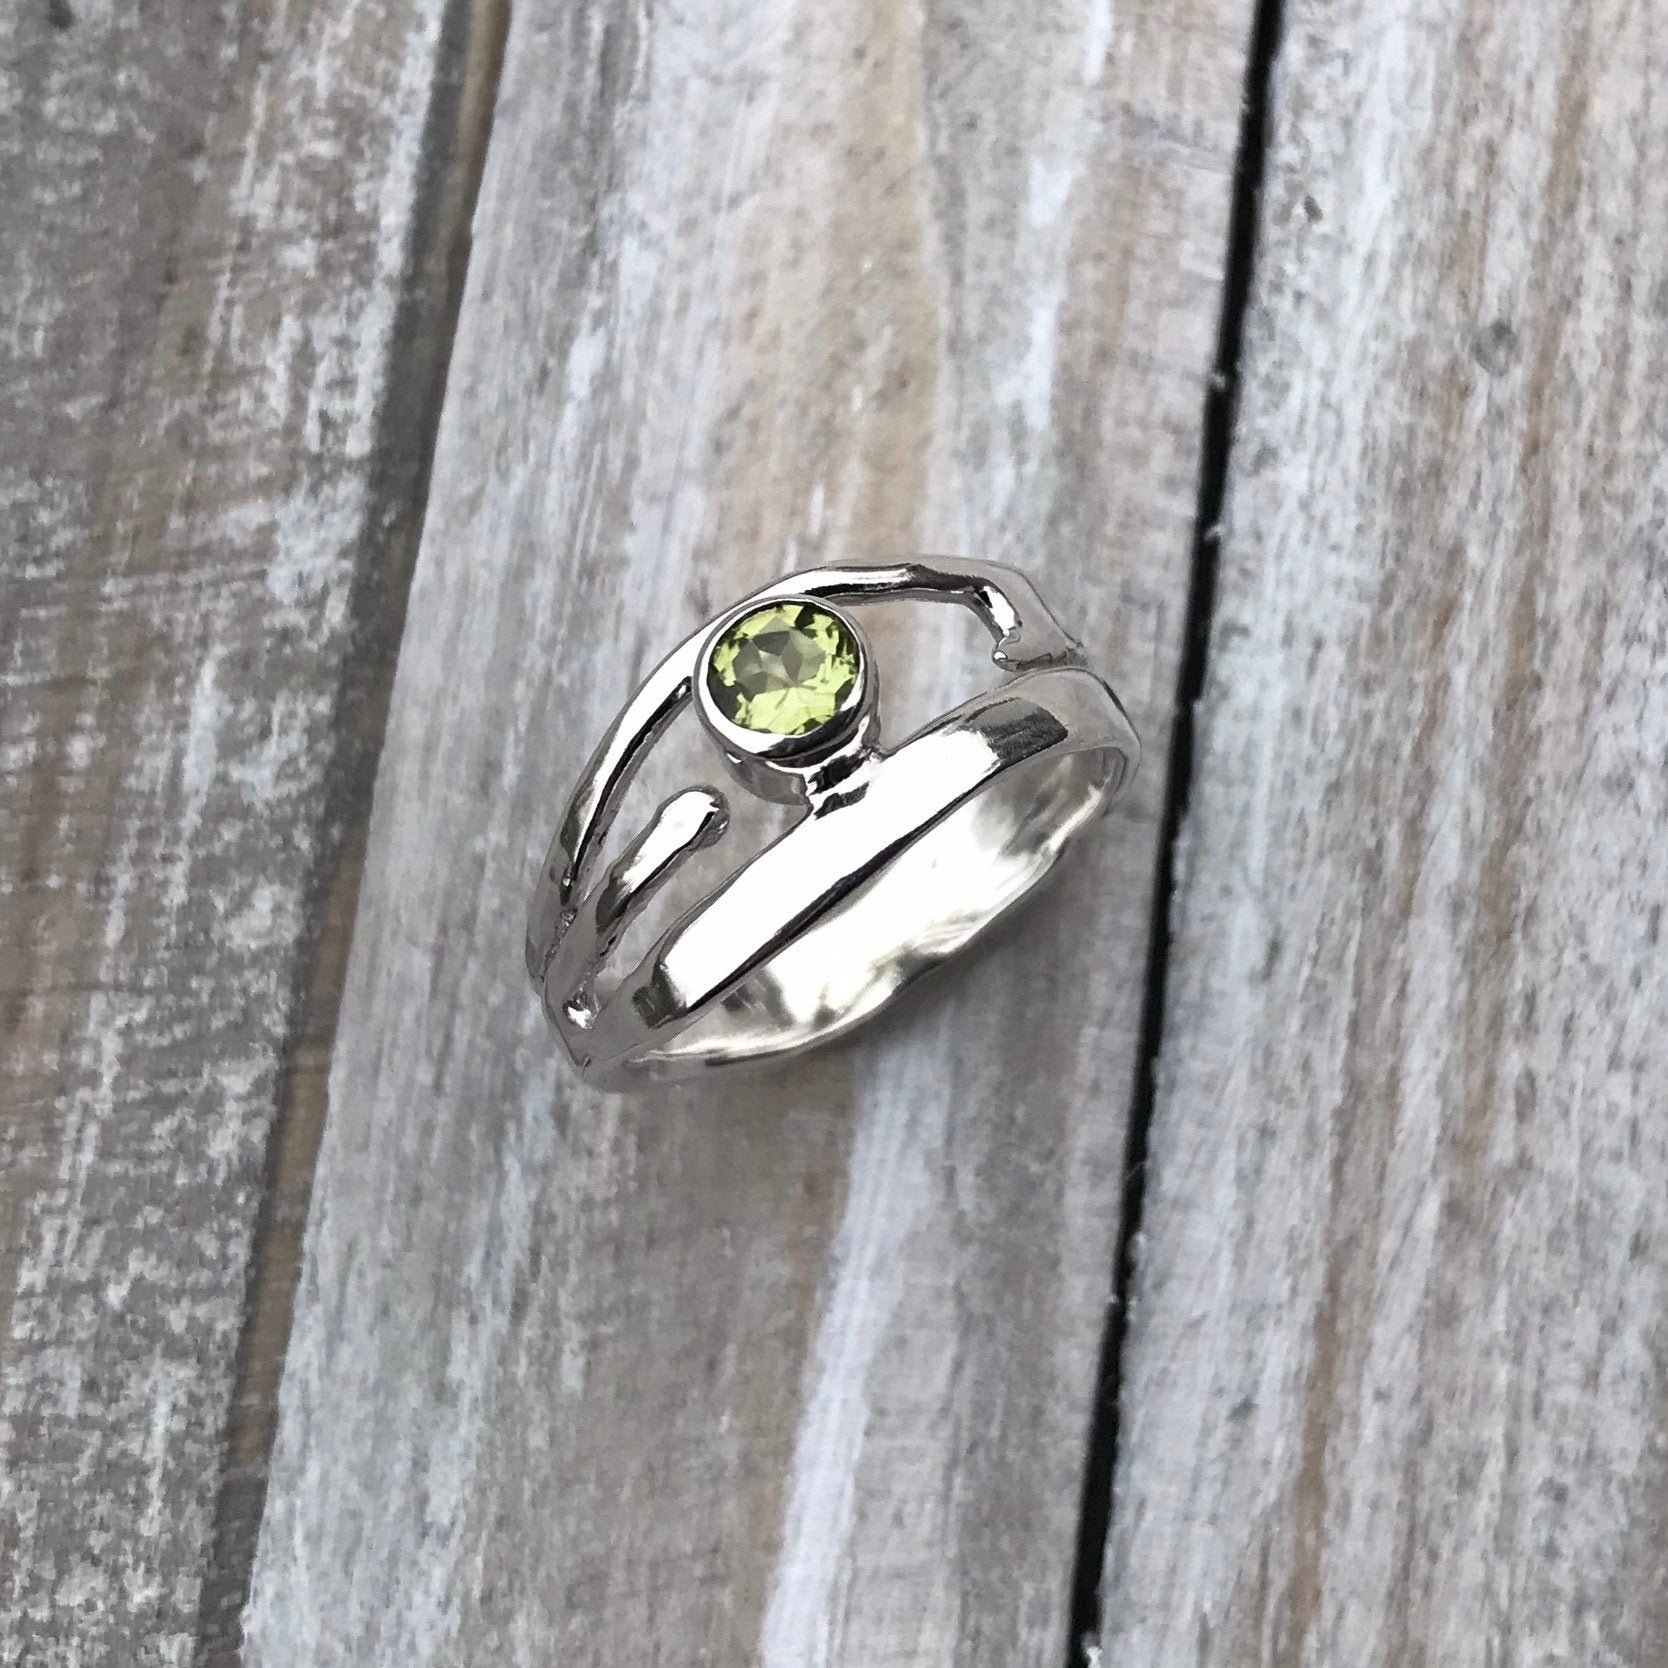 Sterling Silver Peridot Ring - Organic Design